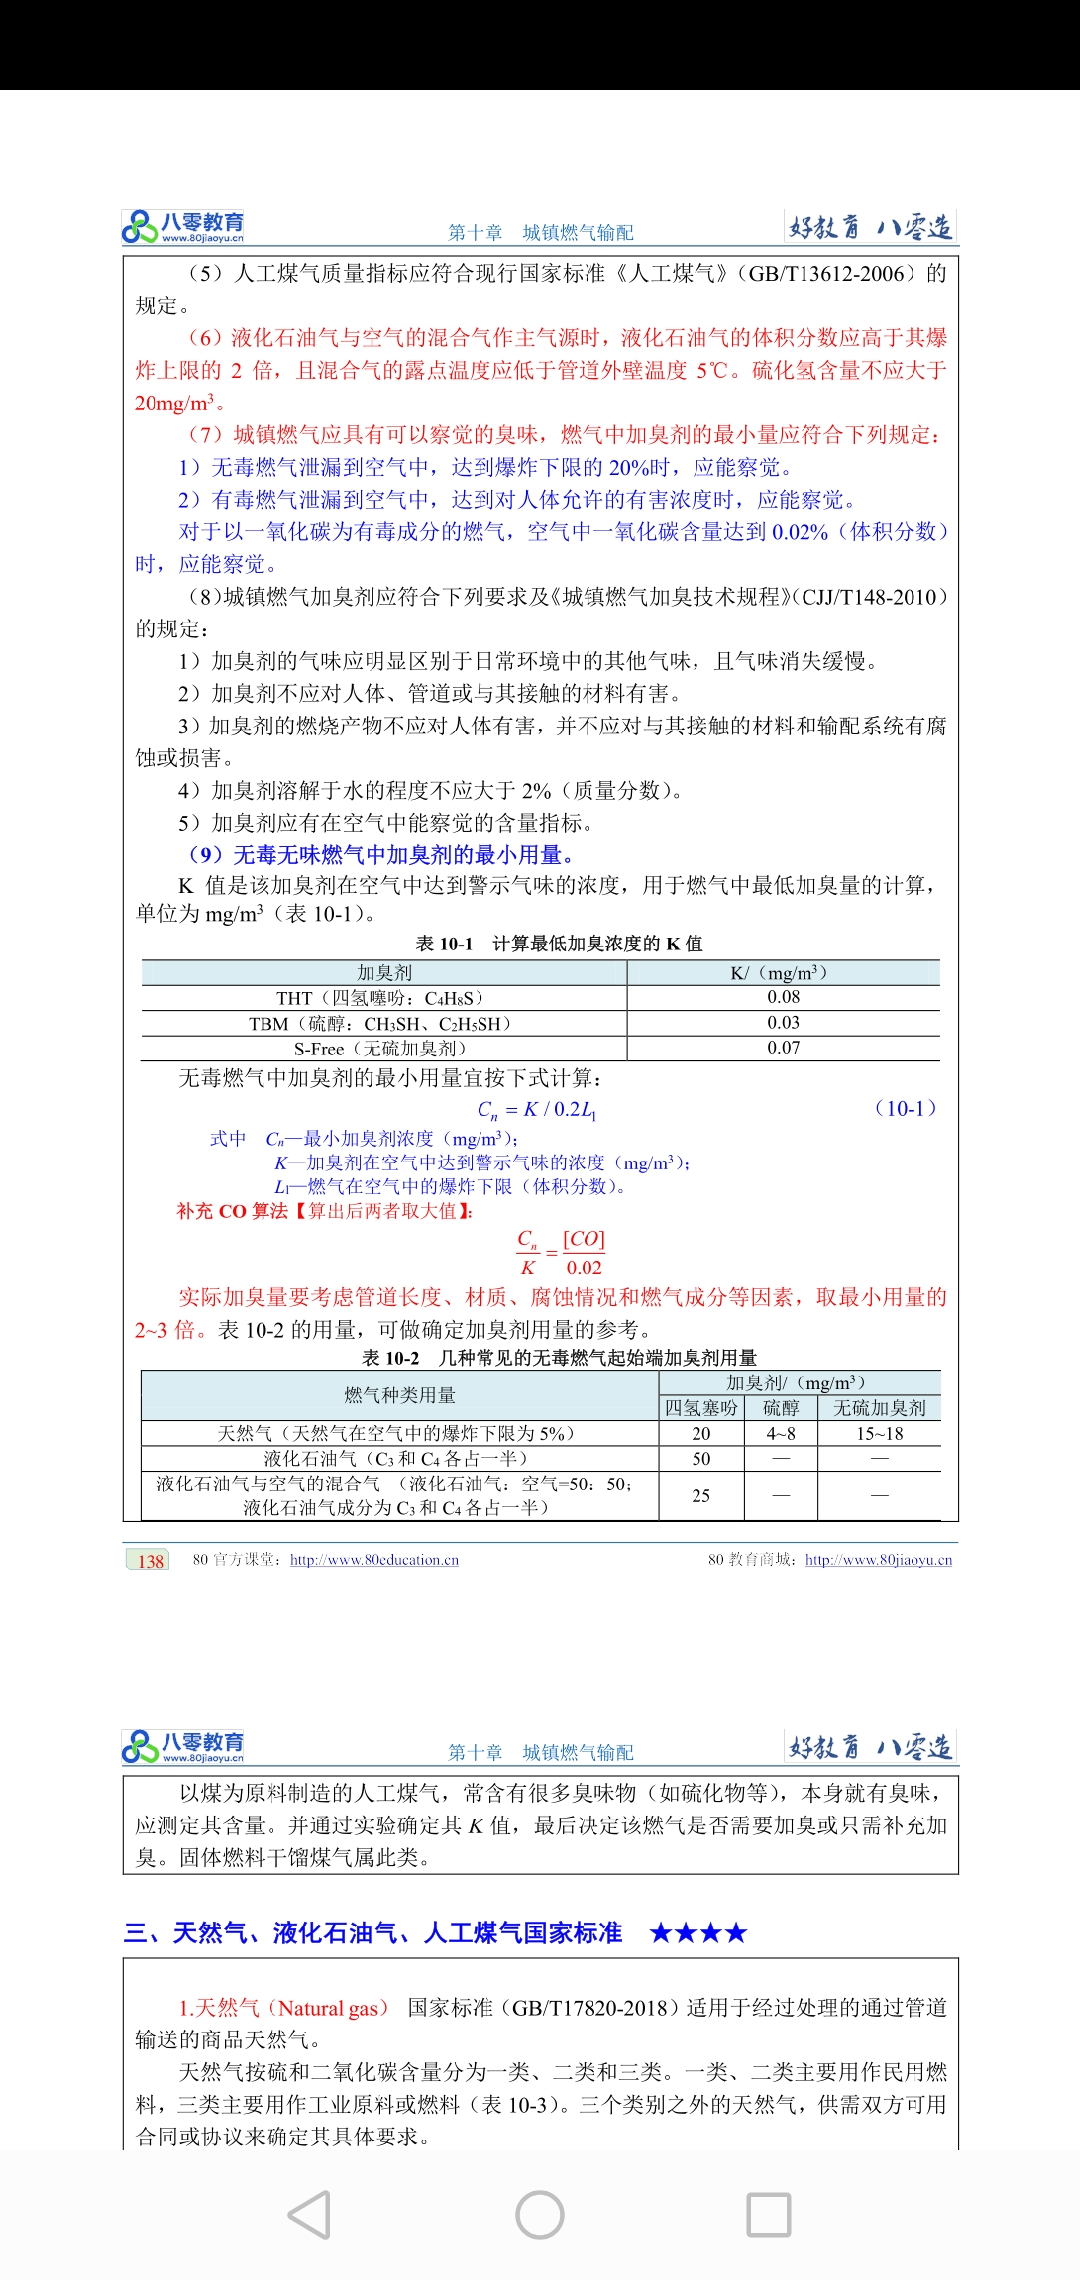 Screenshot_20190920_013721_com.tencent.mobileqq.jpg